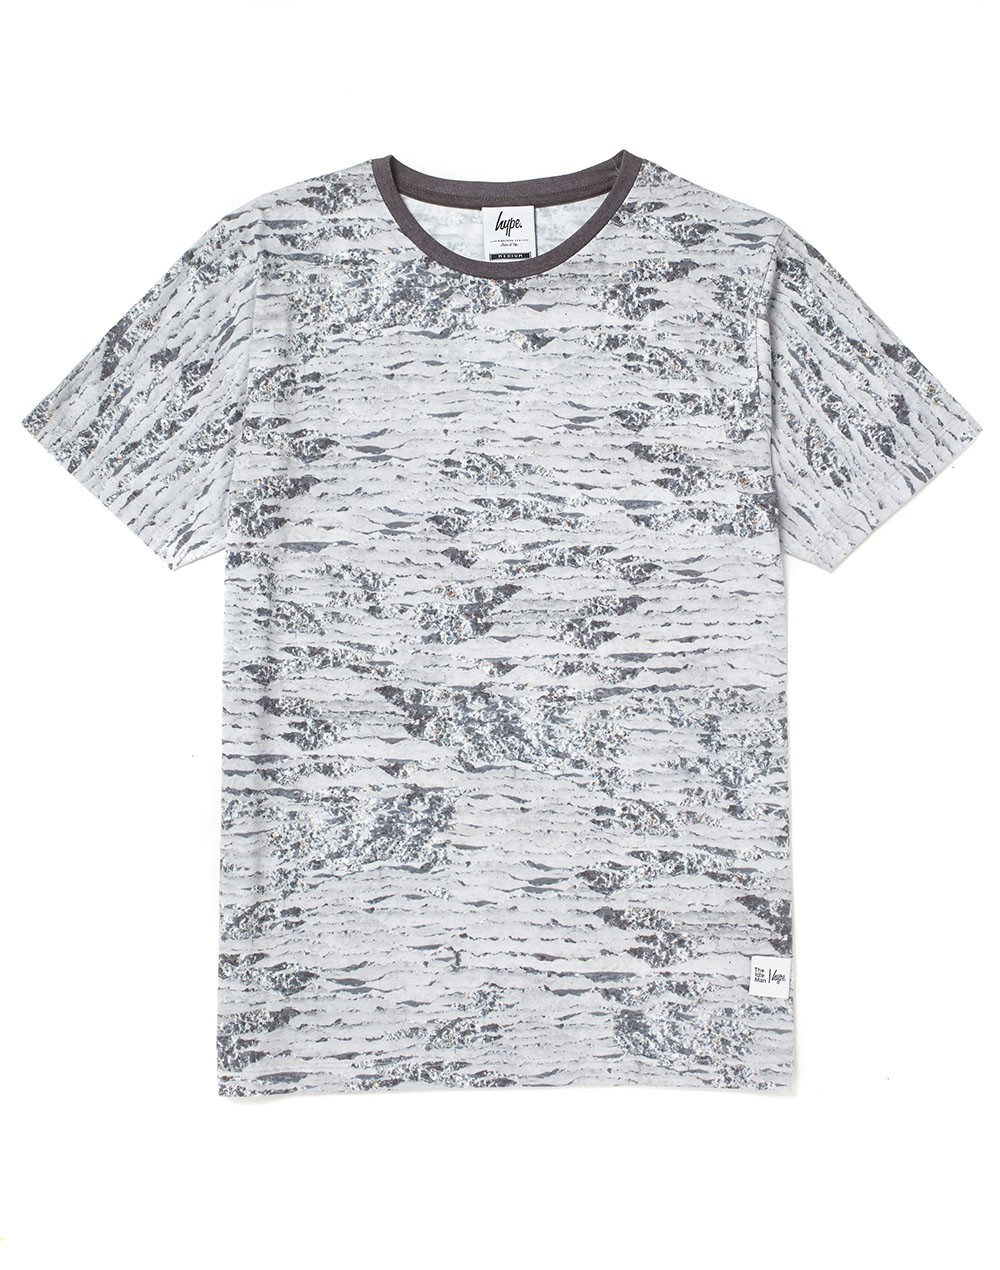 T Shirt All Over Print Design Bcd Tofu House